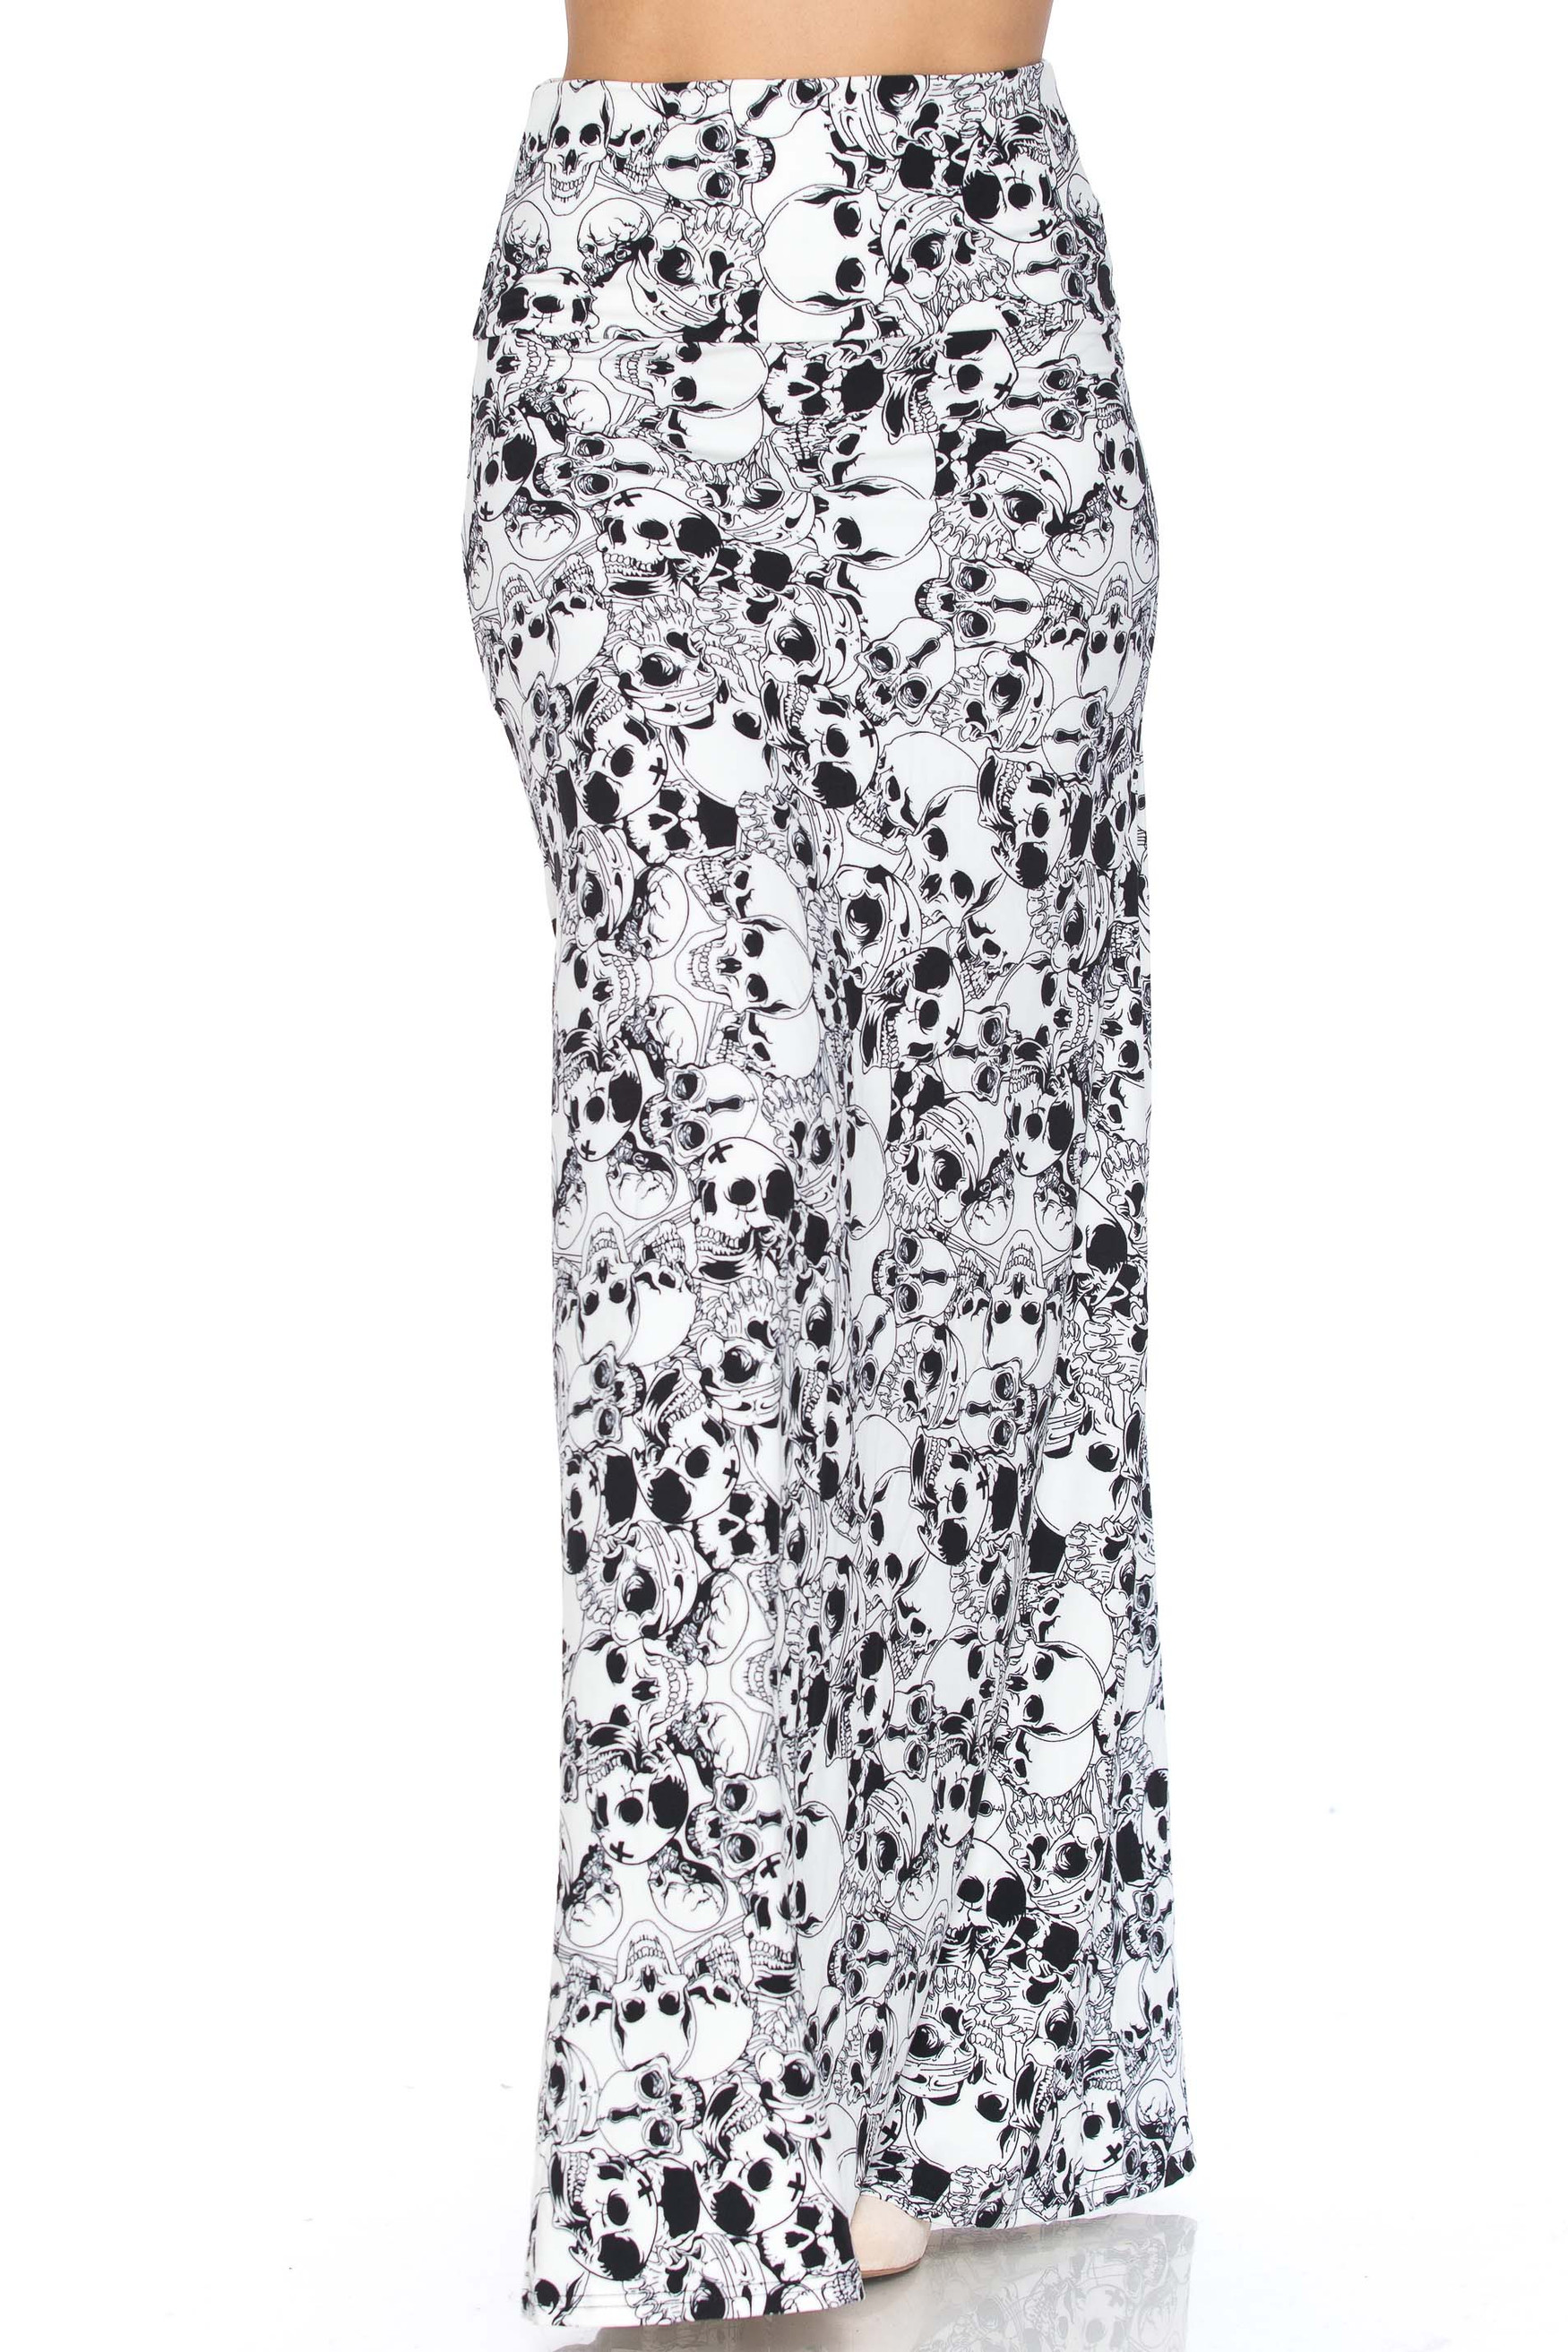 White Layers of Skulls Plus Size Buttery Soft Maxi Skirt